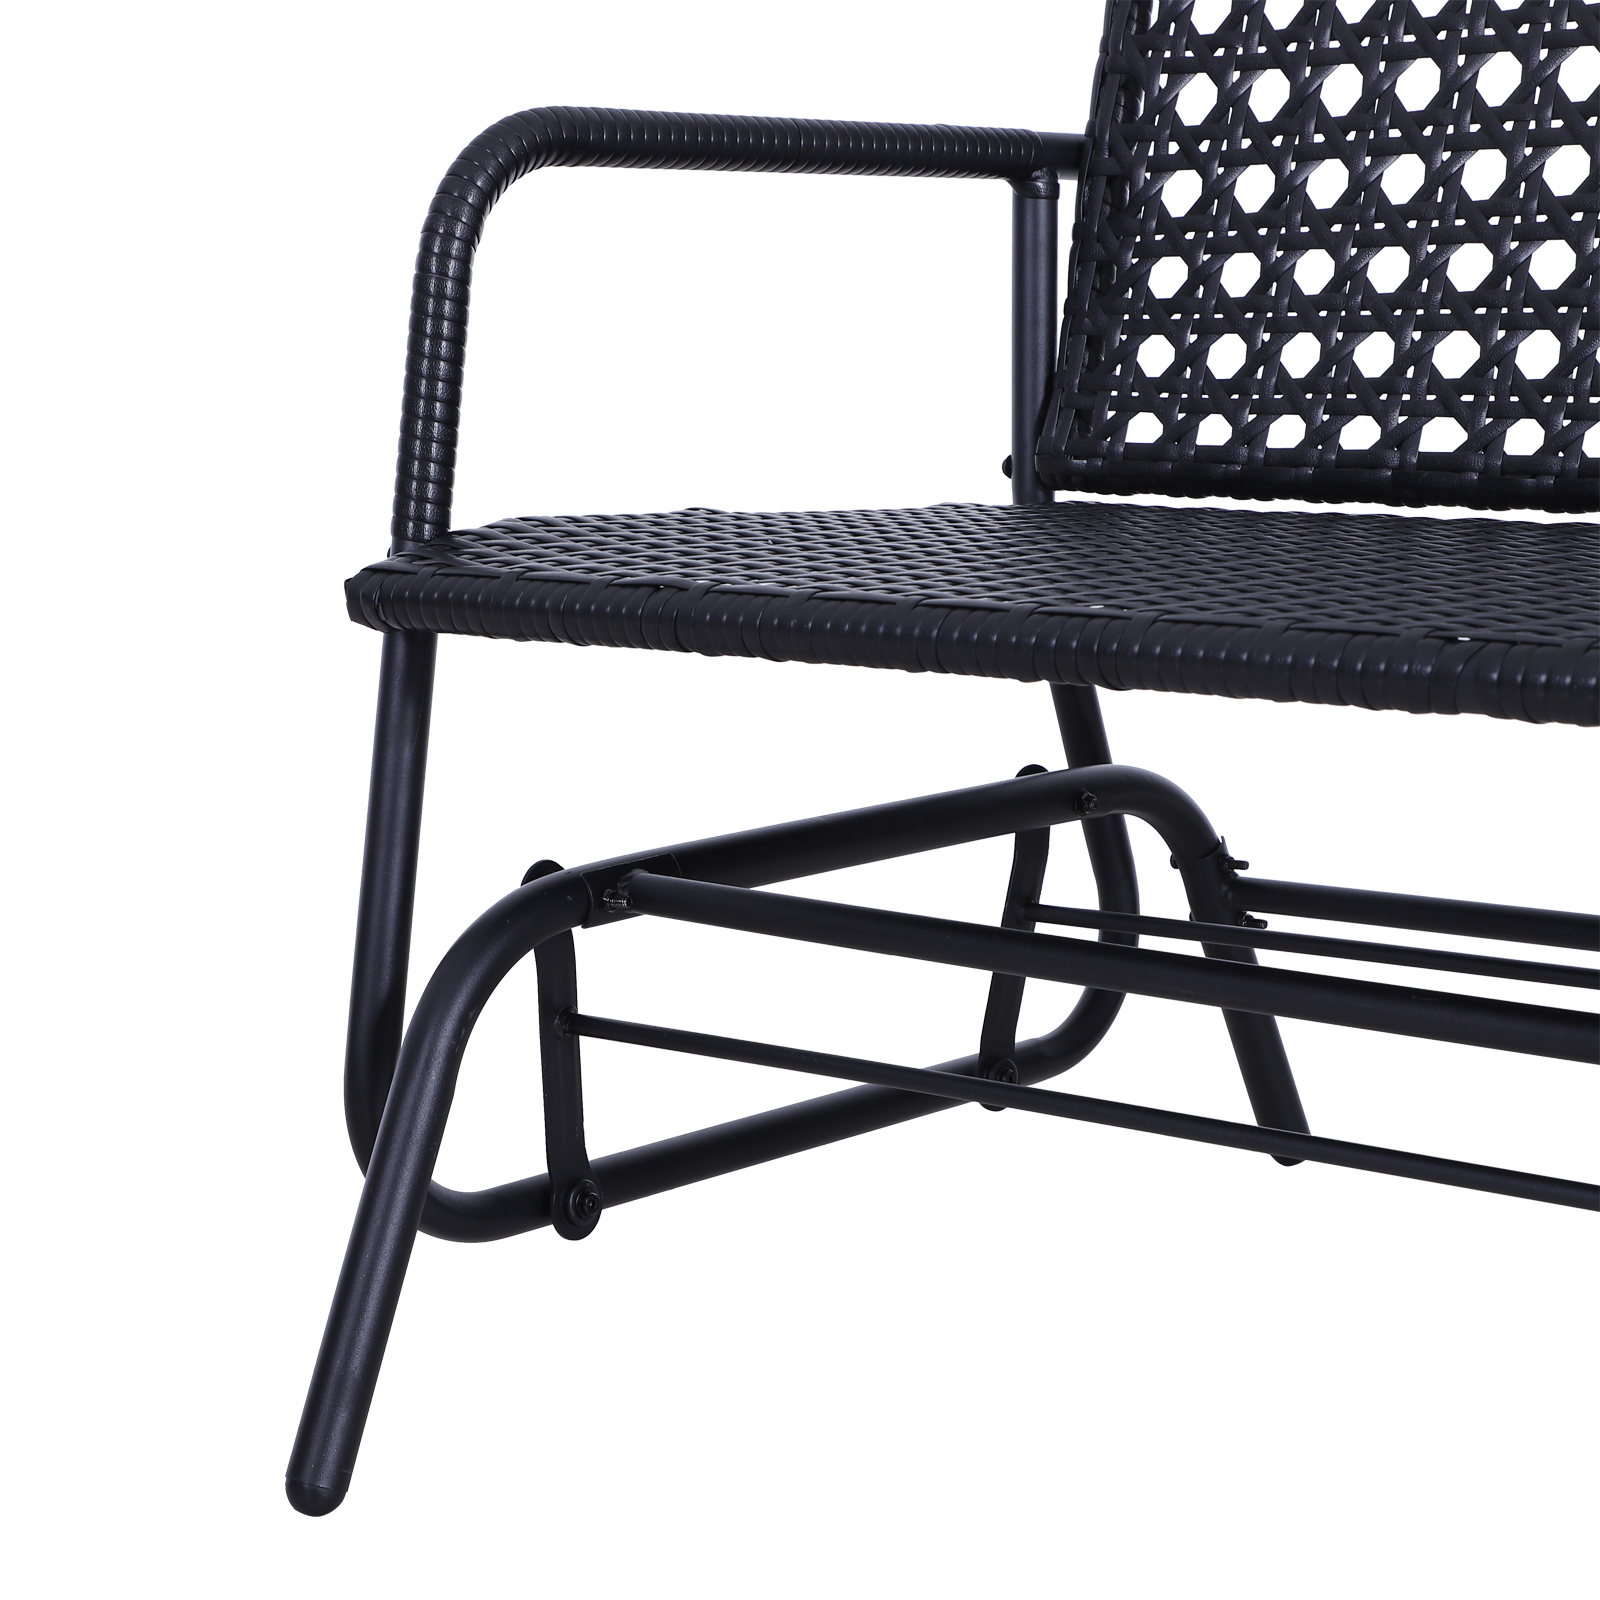 Outsunny-47x3x35inch-Garden-Bench-Wicker-Glider-Swing-Chair-Black thumbnail 6